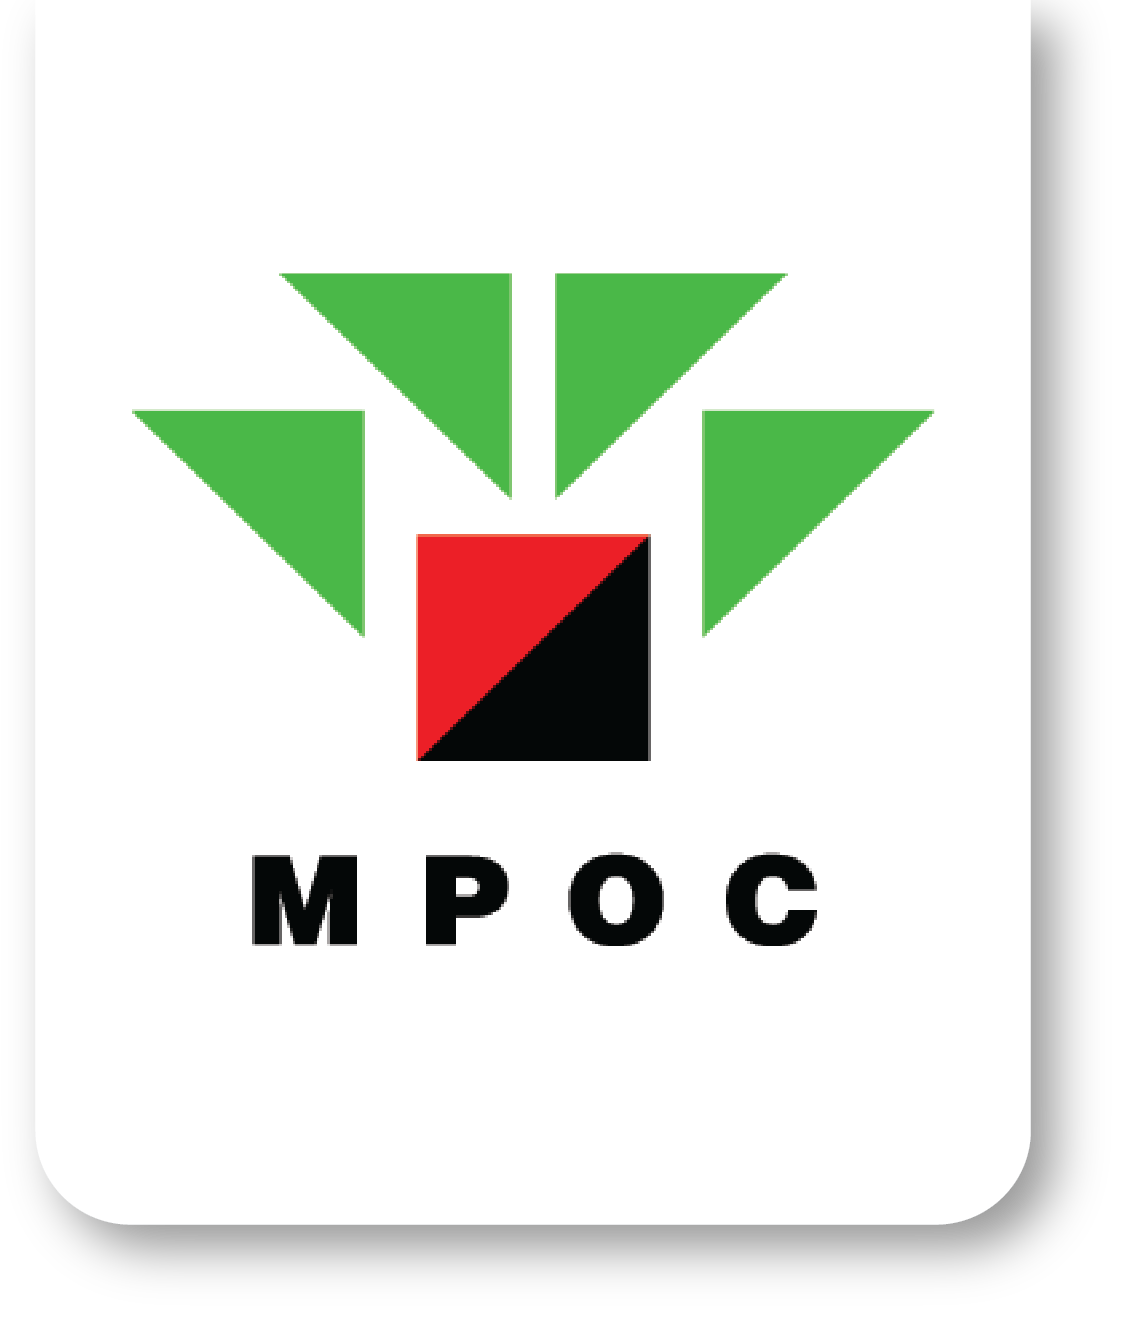 MPOC – Malaysian Palm Oil Council